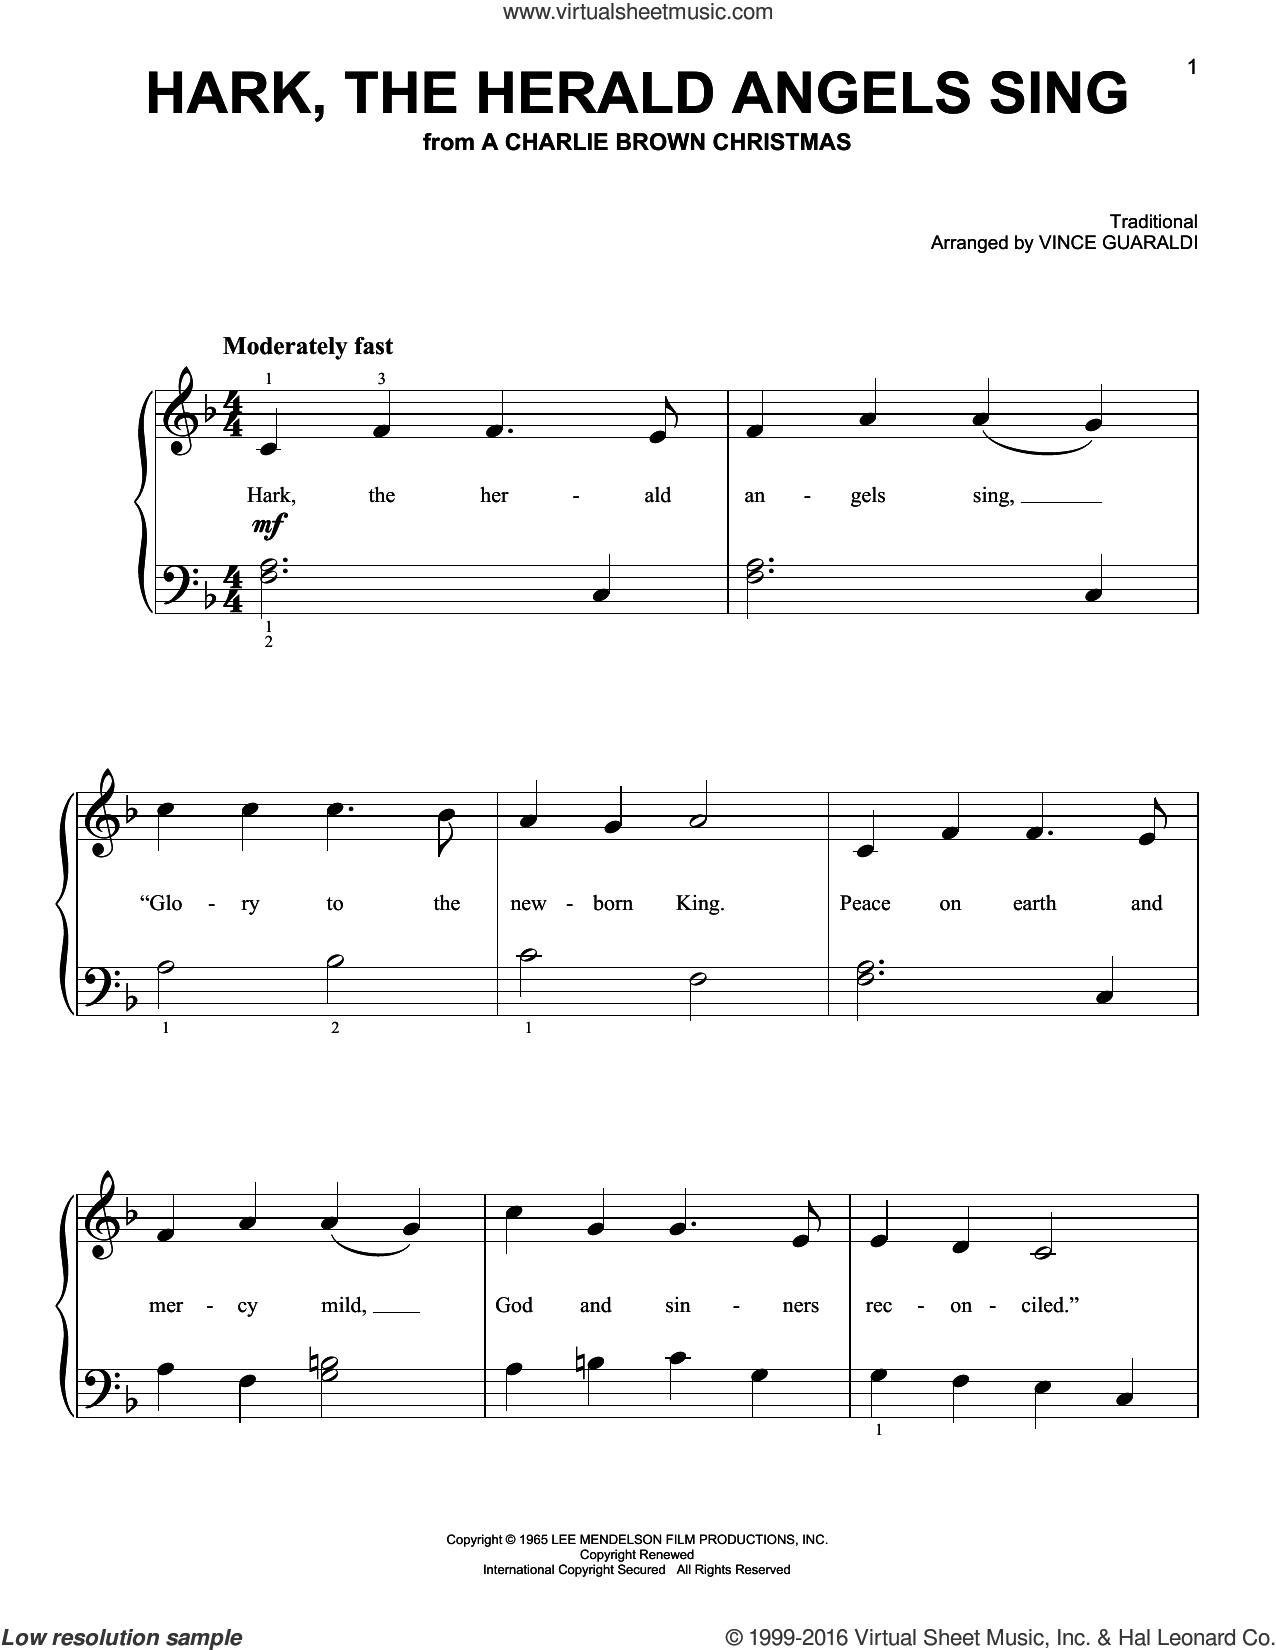 Hark, The Herald Angels Sing sheet music for piano solo by Vince Guaraldi, easy skill level